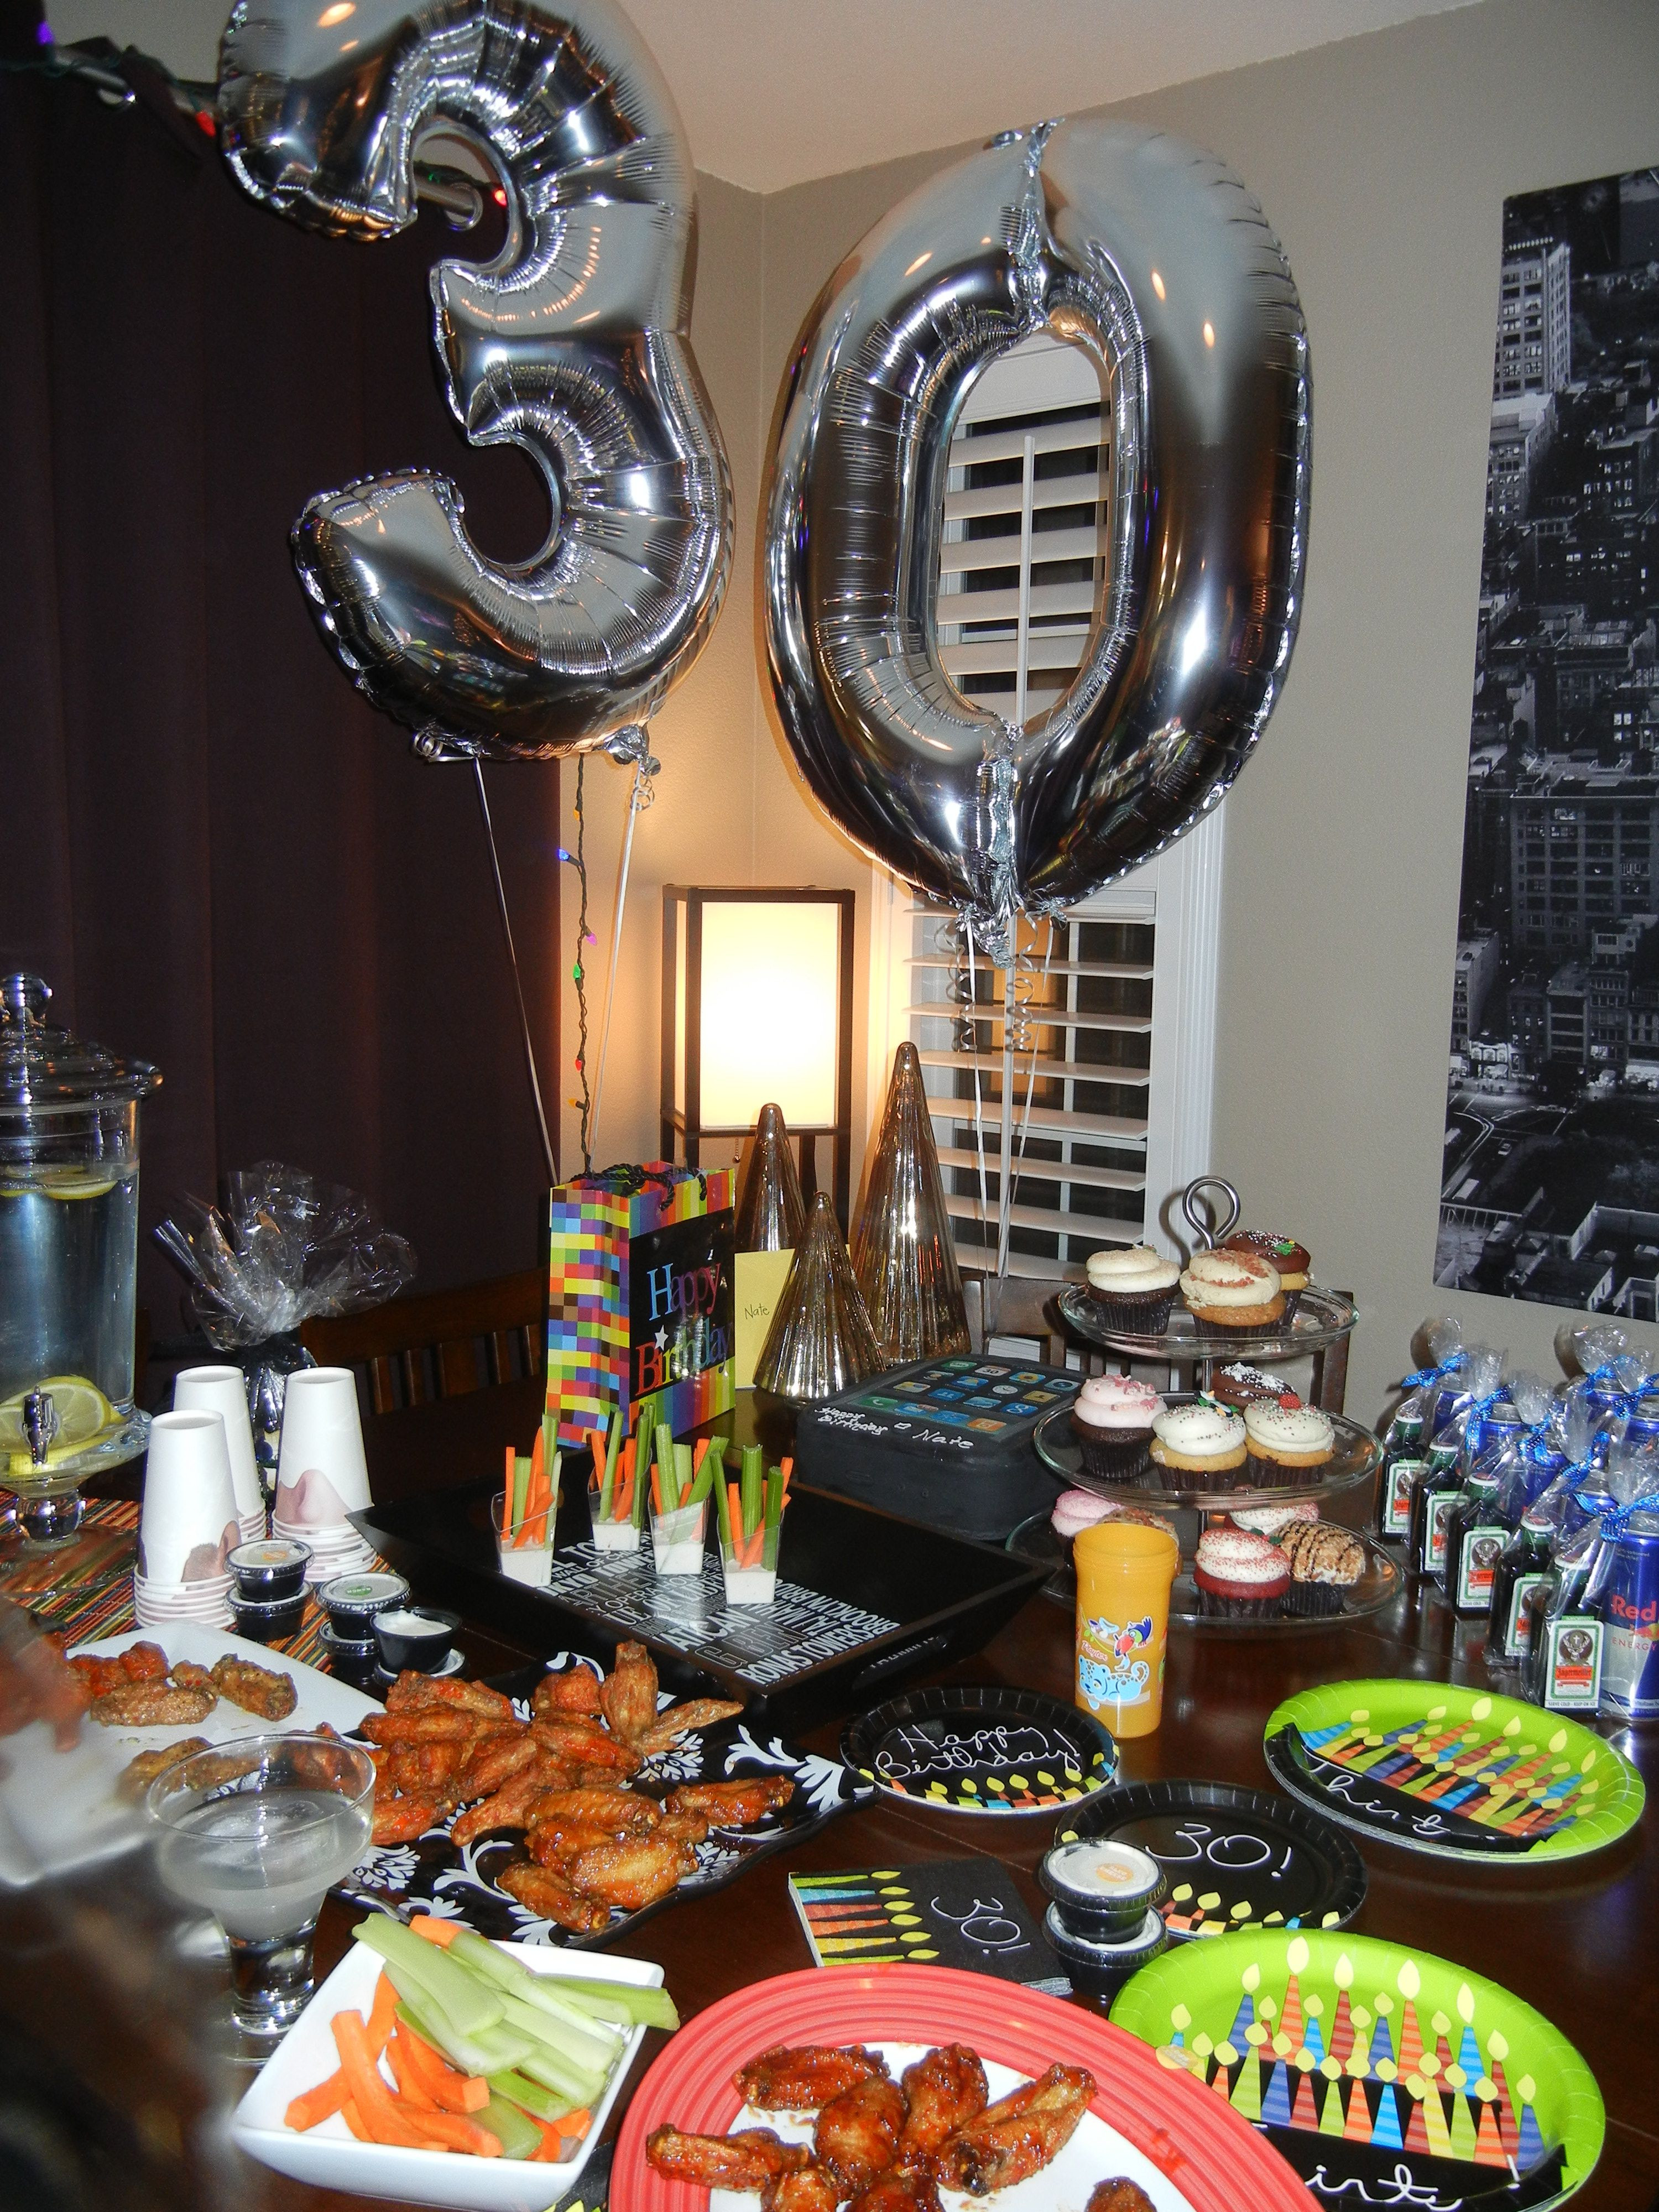 Best ideas about 30th Birthday Decorations . Save or Pin Husband s 30th birthday My stuff Now.